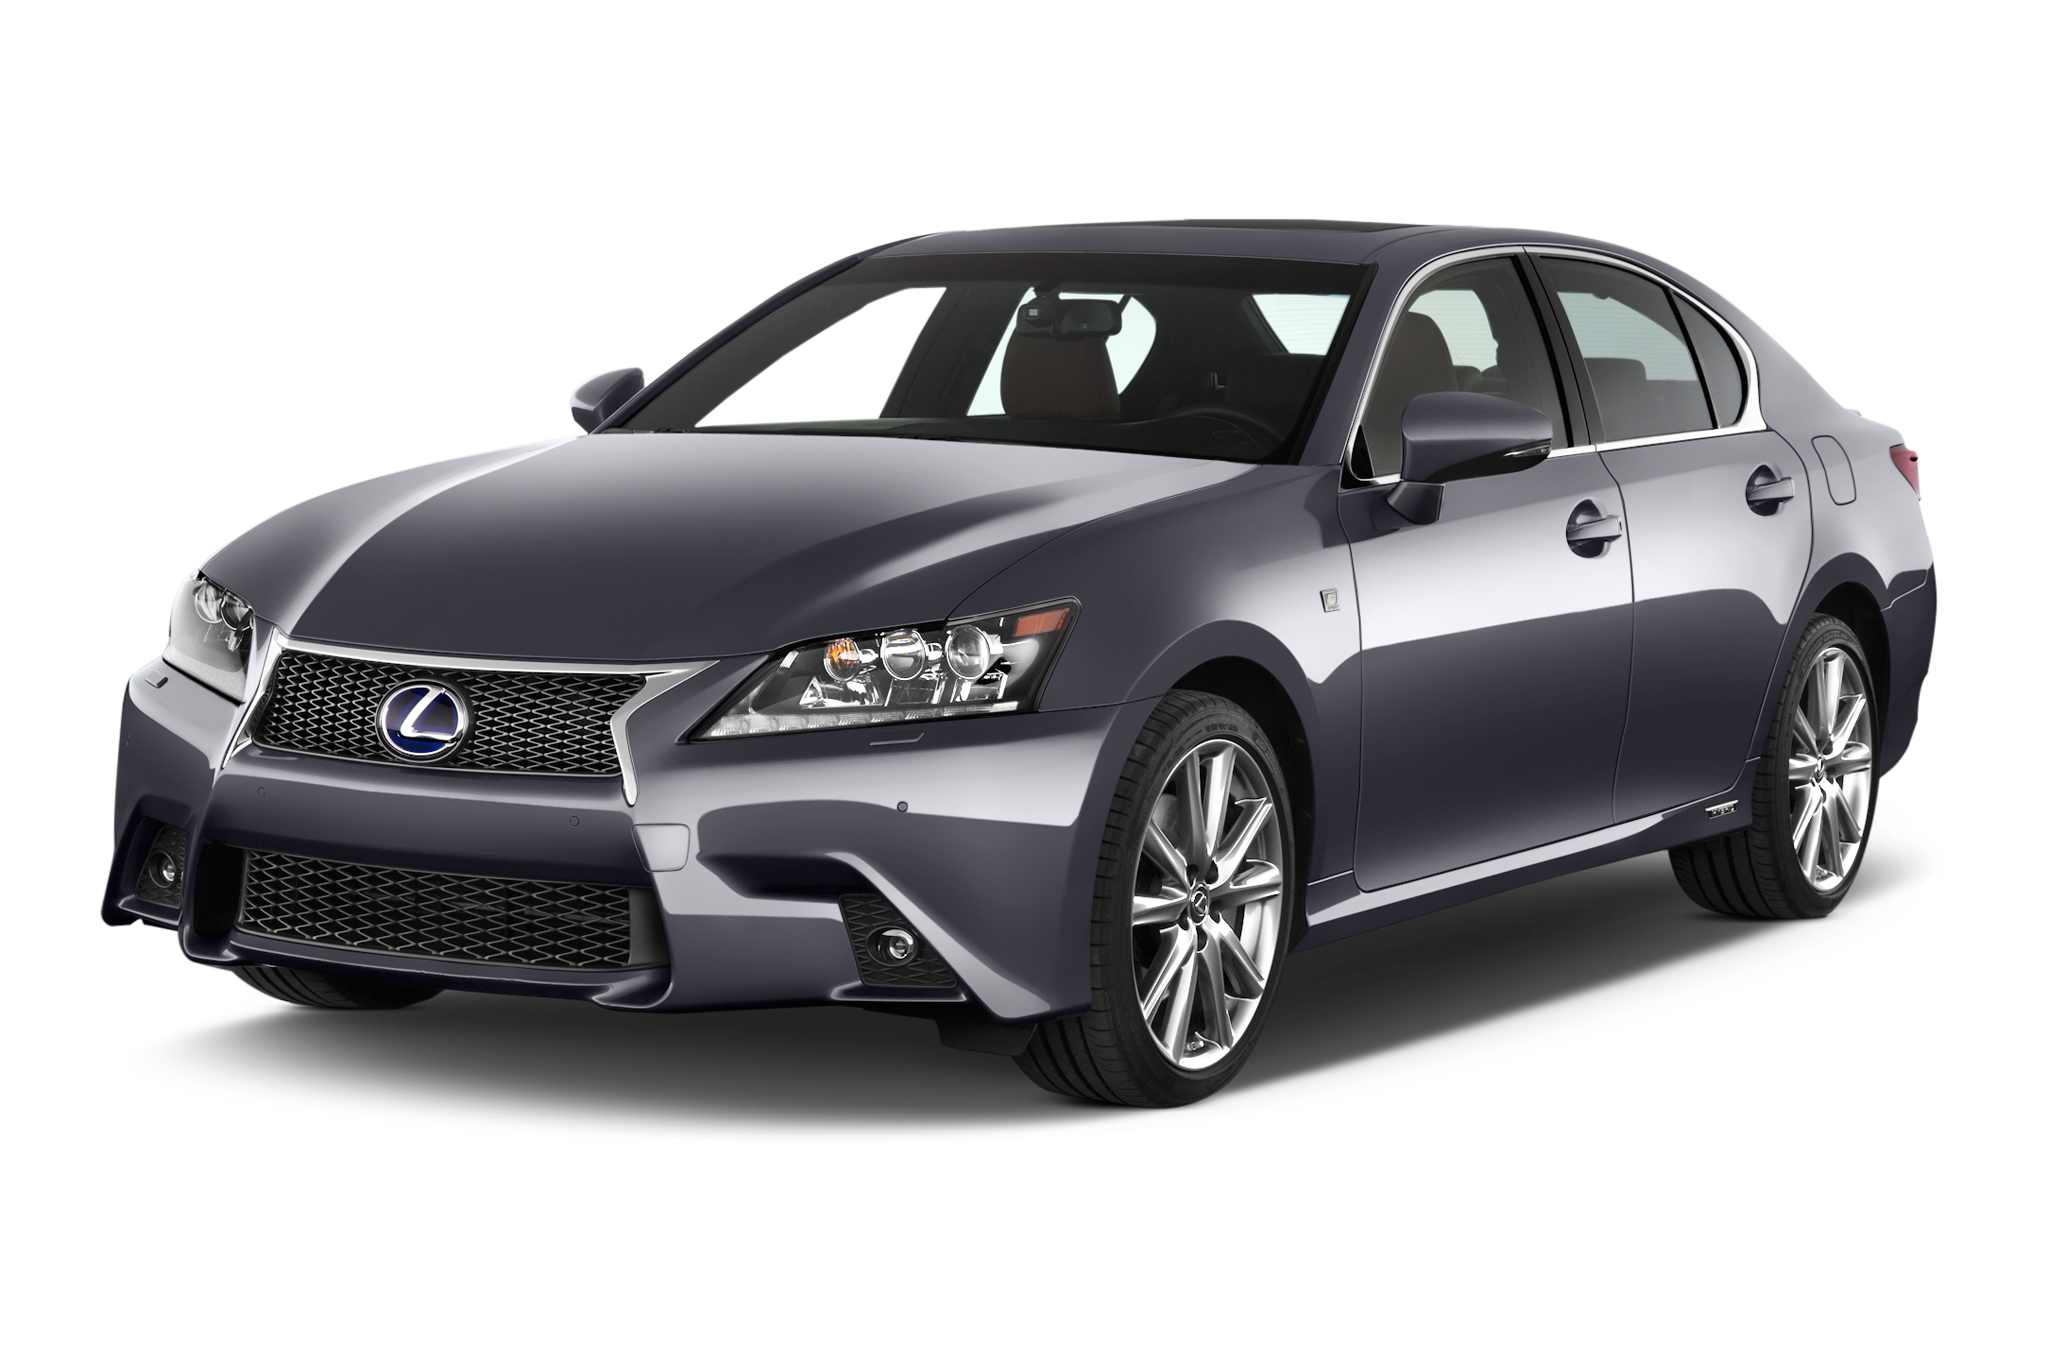 First Look 2013 Lexus ES 350 and ES 300h Automobile Magazine